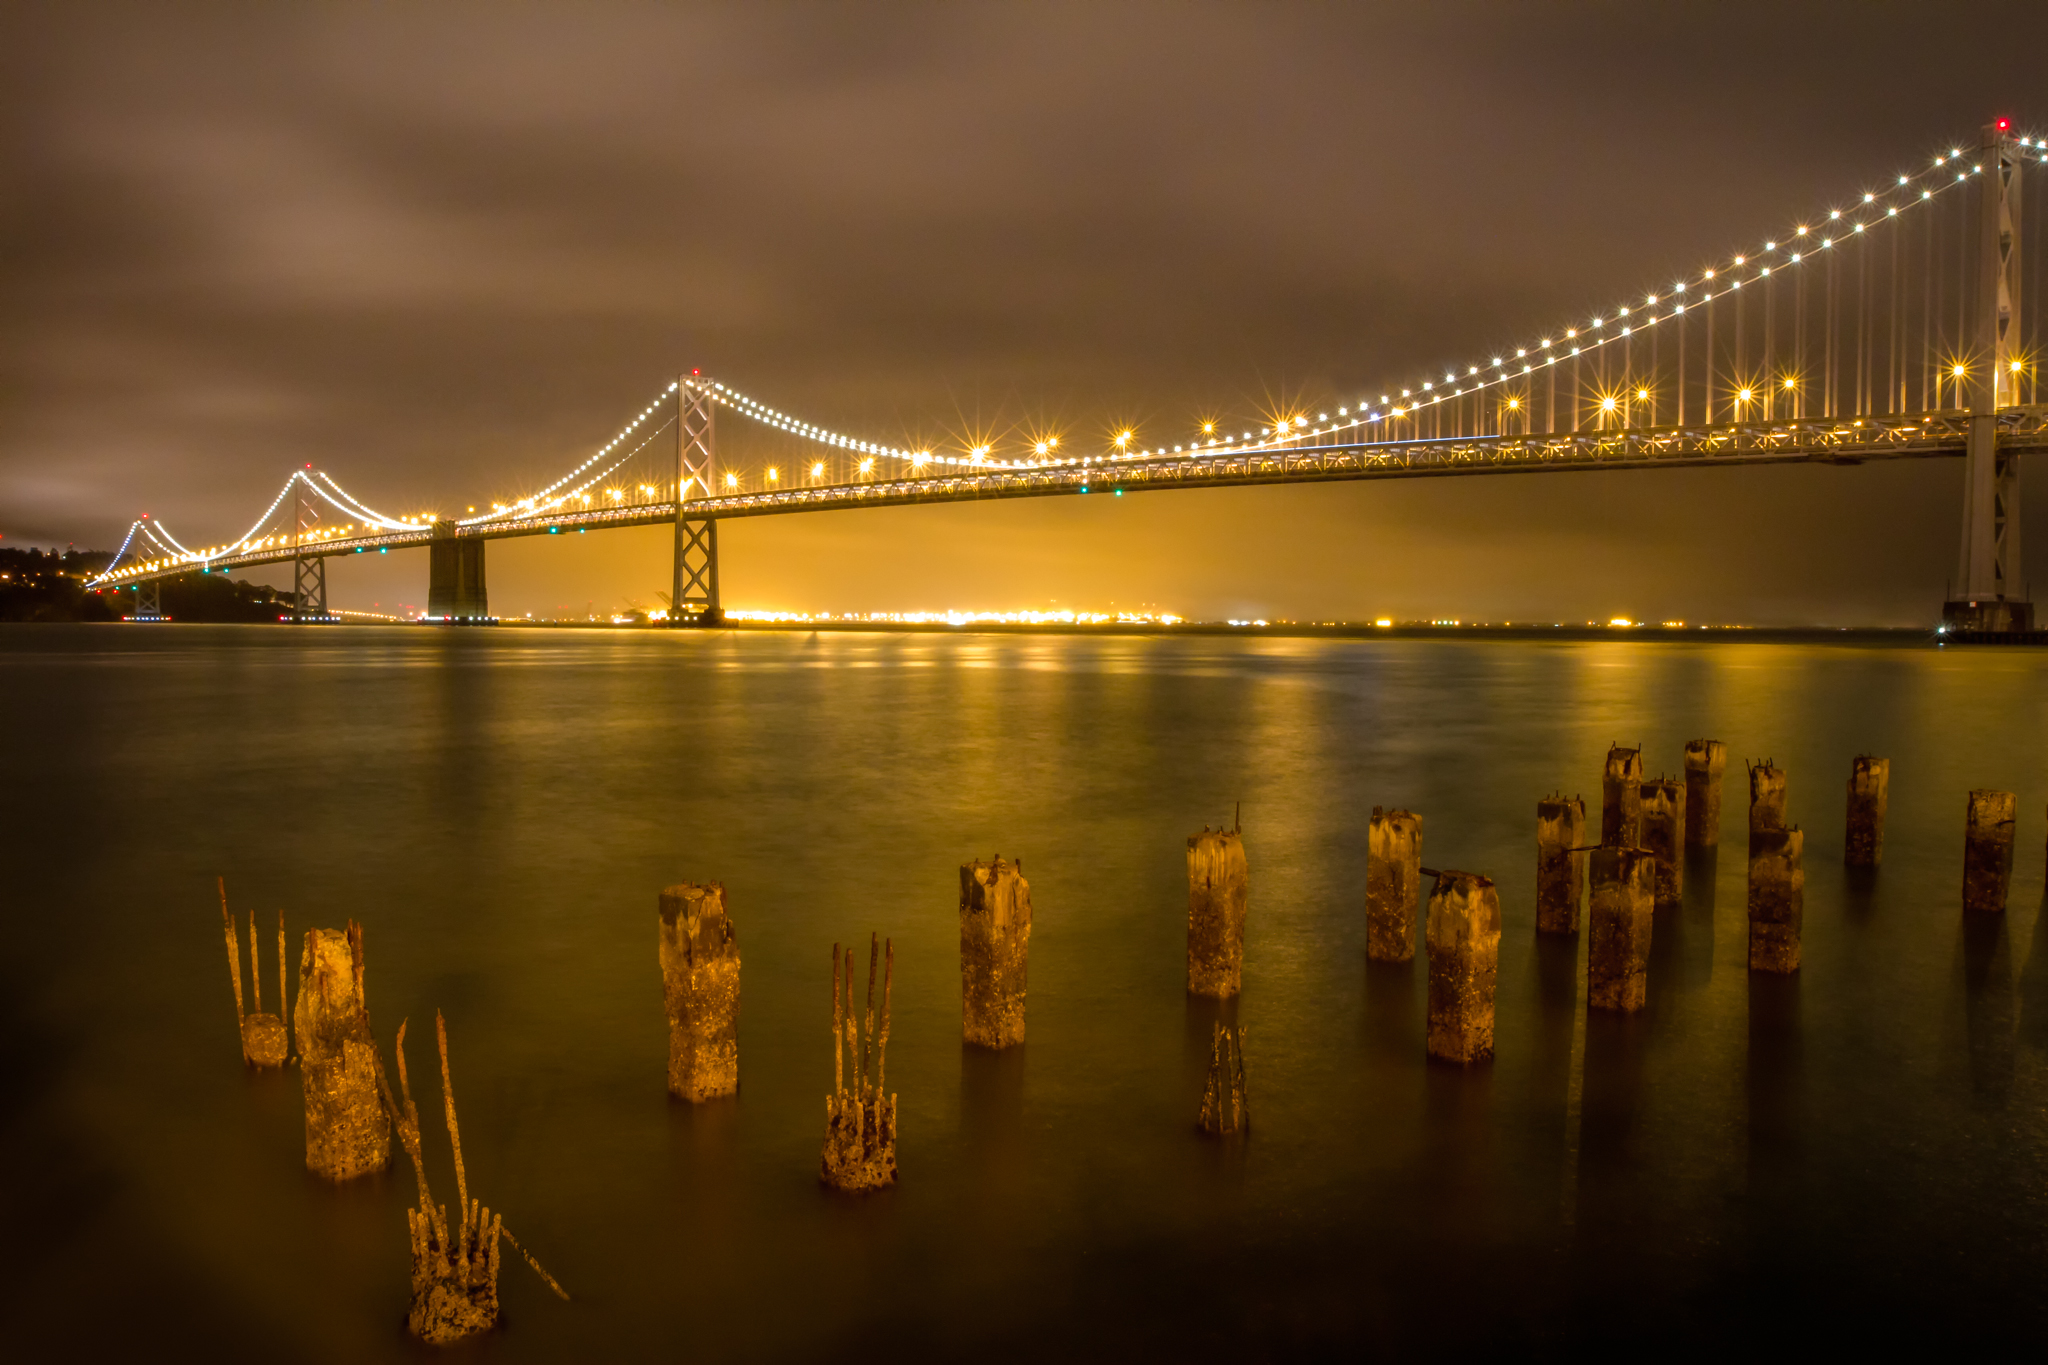 I went to this spot on the Embarcadero several times, but it never worked. I finally made this image to complete my quest.